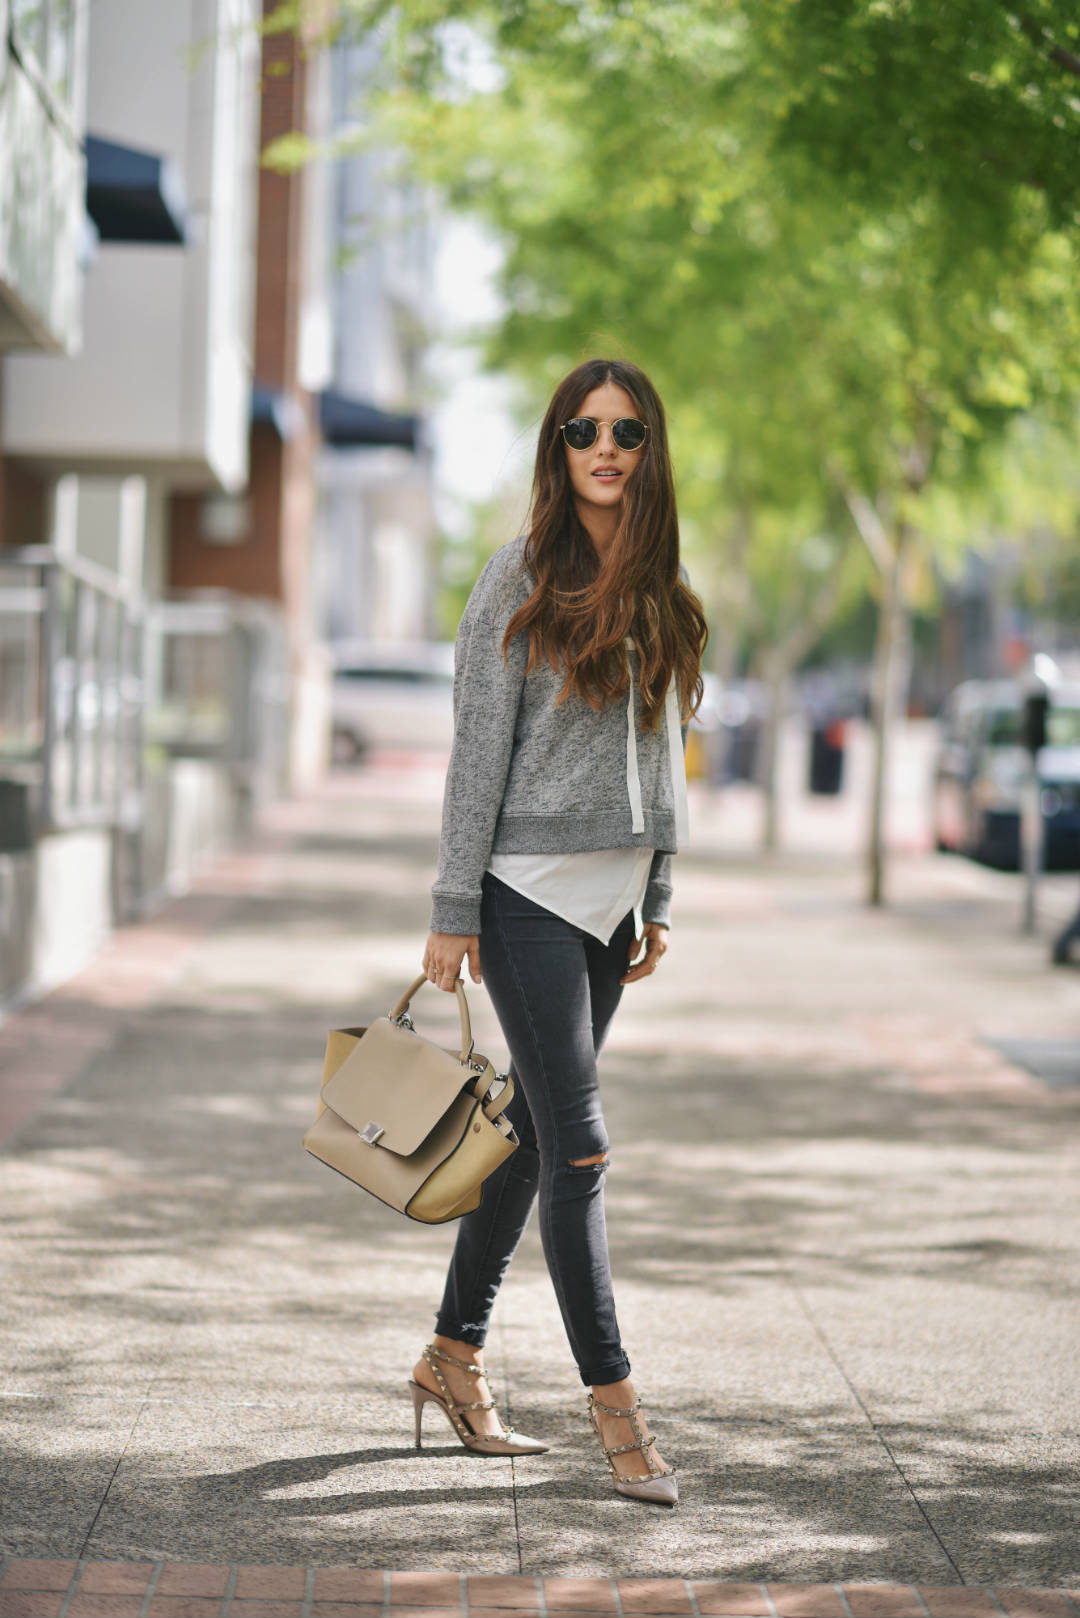 New Trendy Black Jeans Outfits Ideas For Women 17